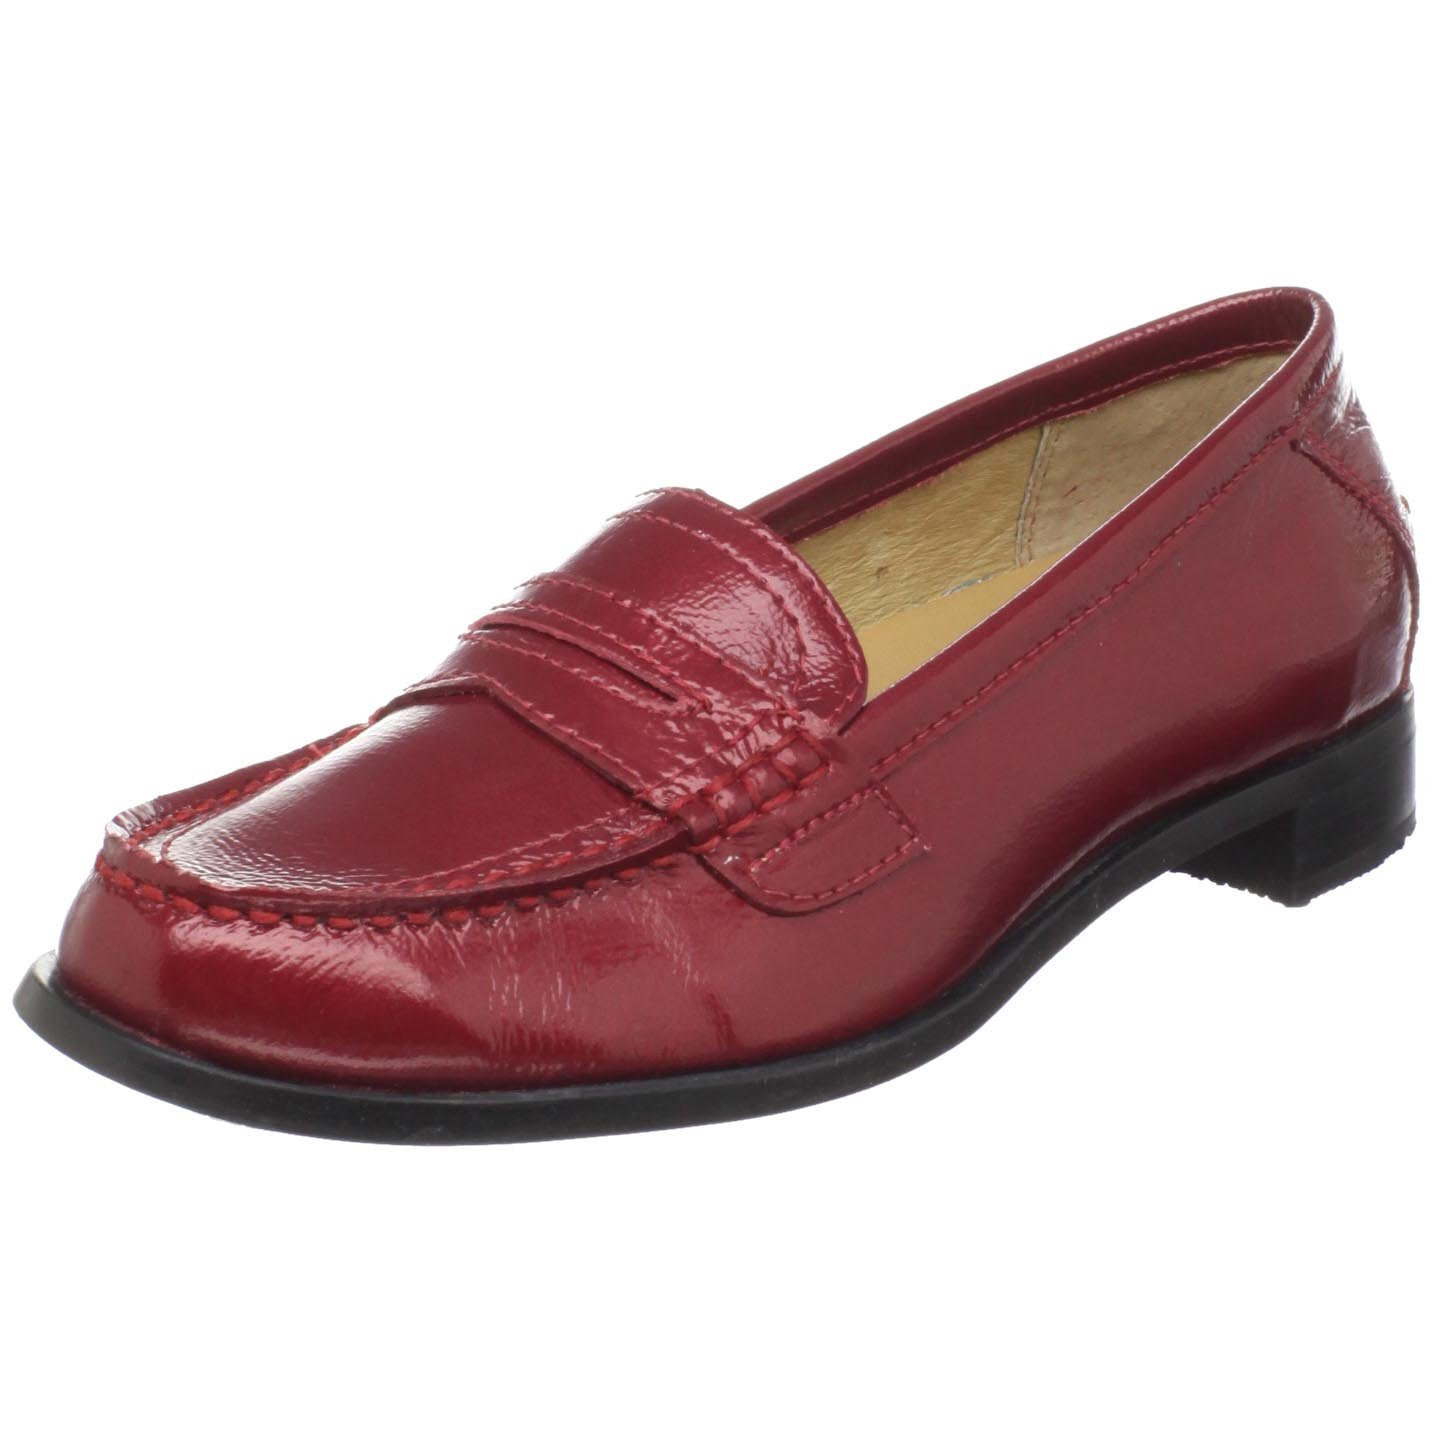 Sebago Womens Cami Penny Loafer in Brown (red patent) | Lyst